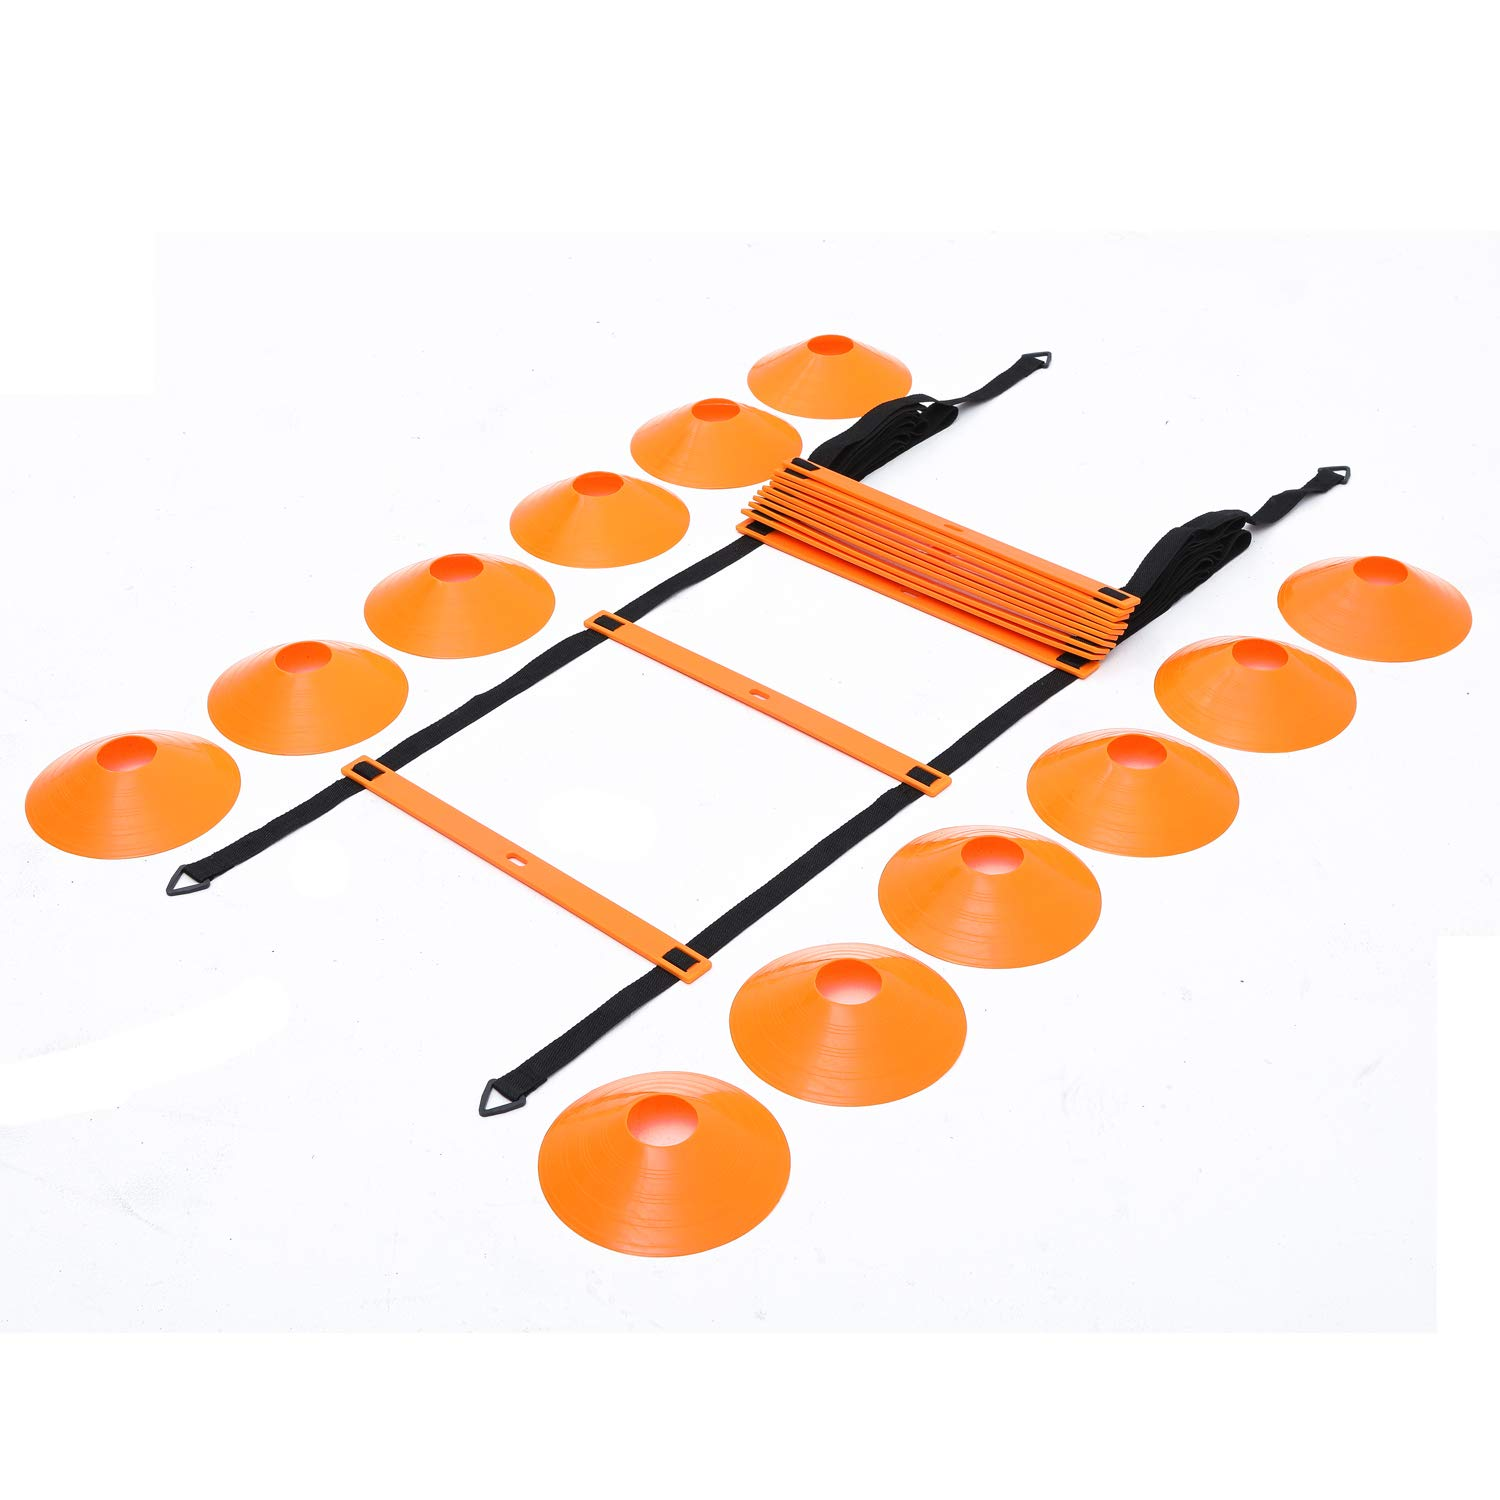 Outroad Hurdles Ladder Set of 12 Rung 12 Cones Sport Equipment